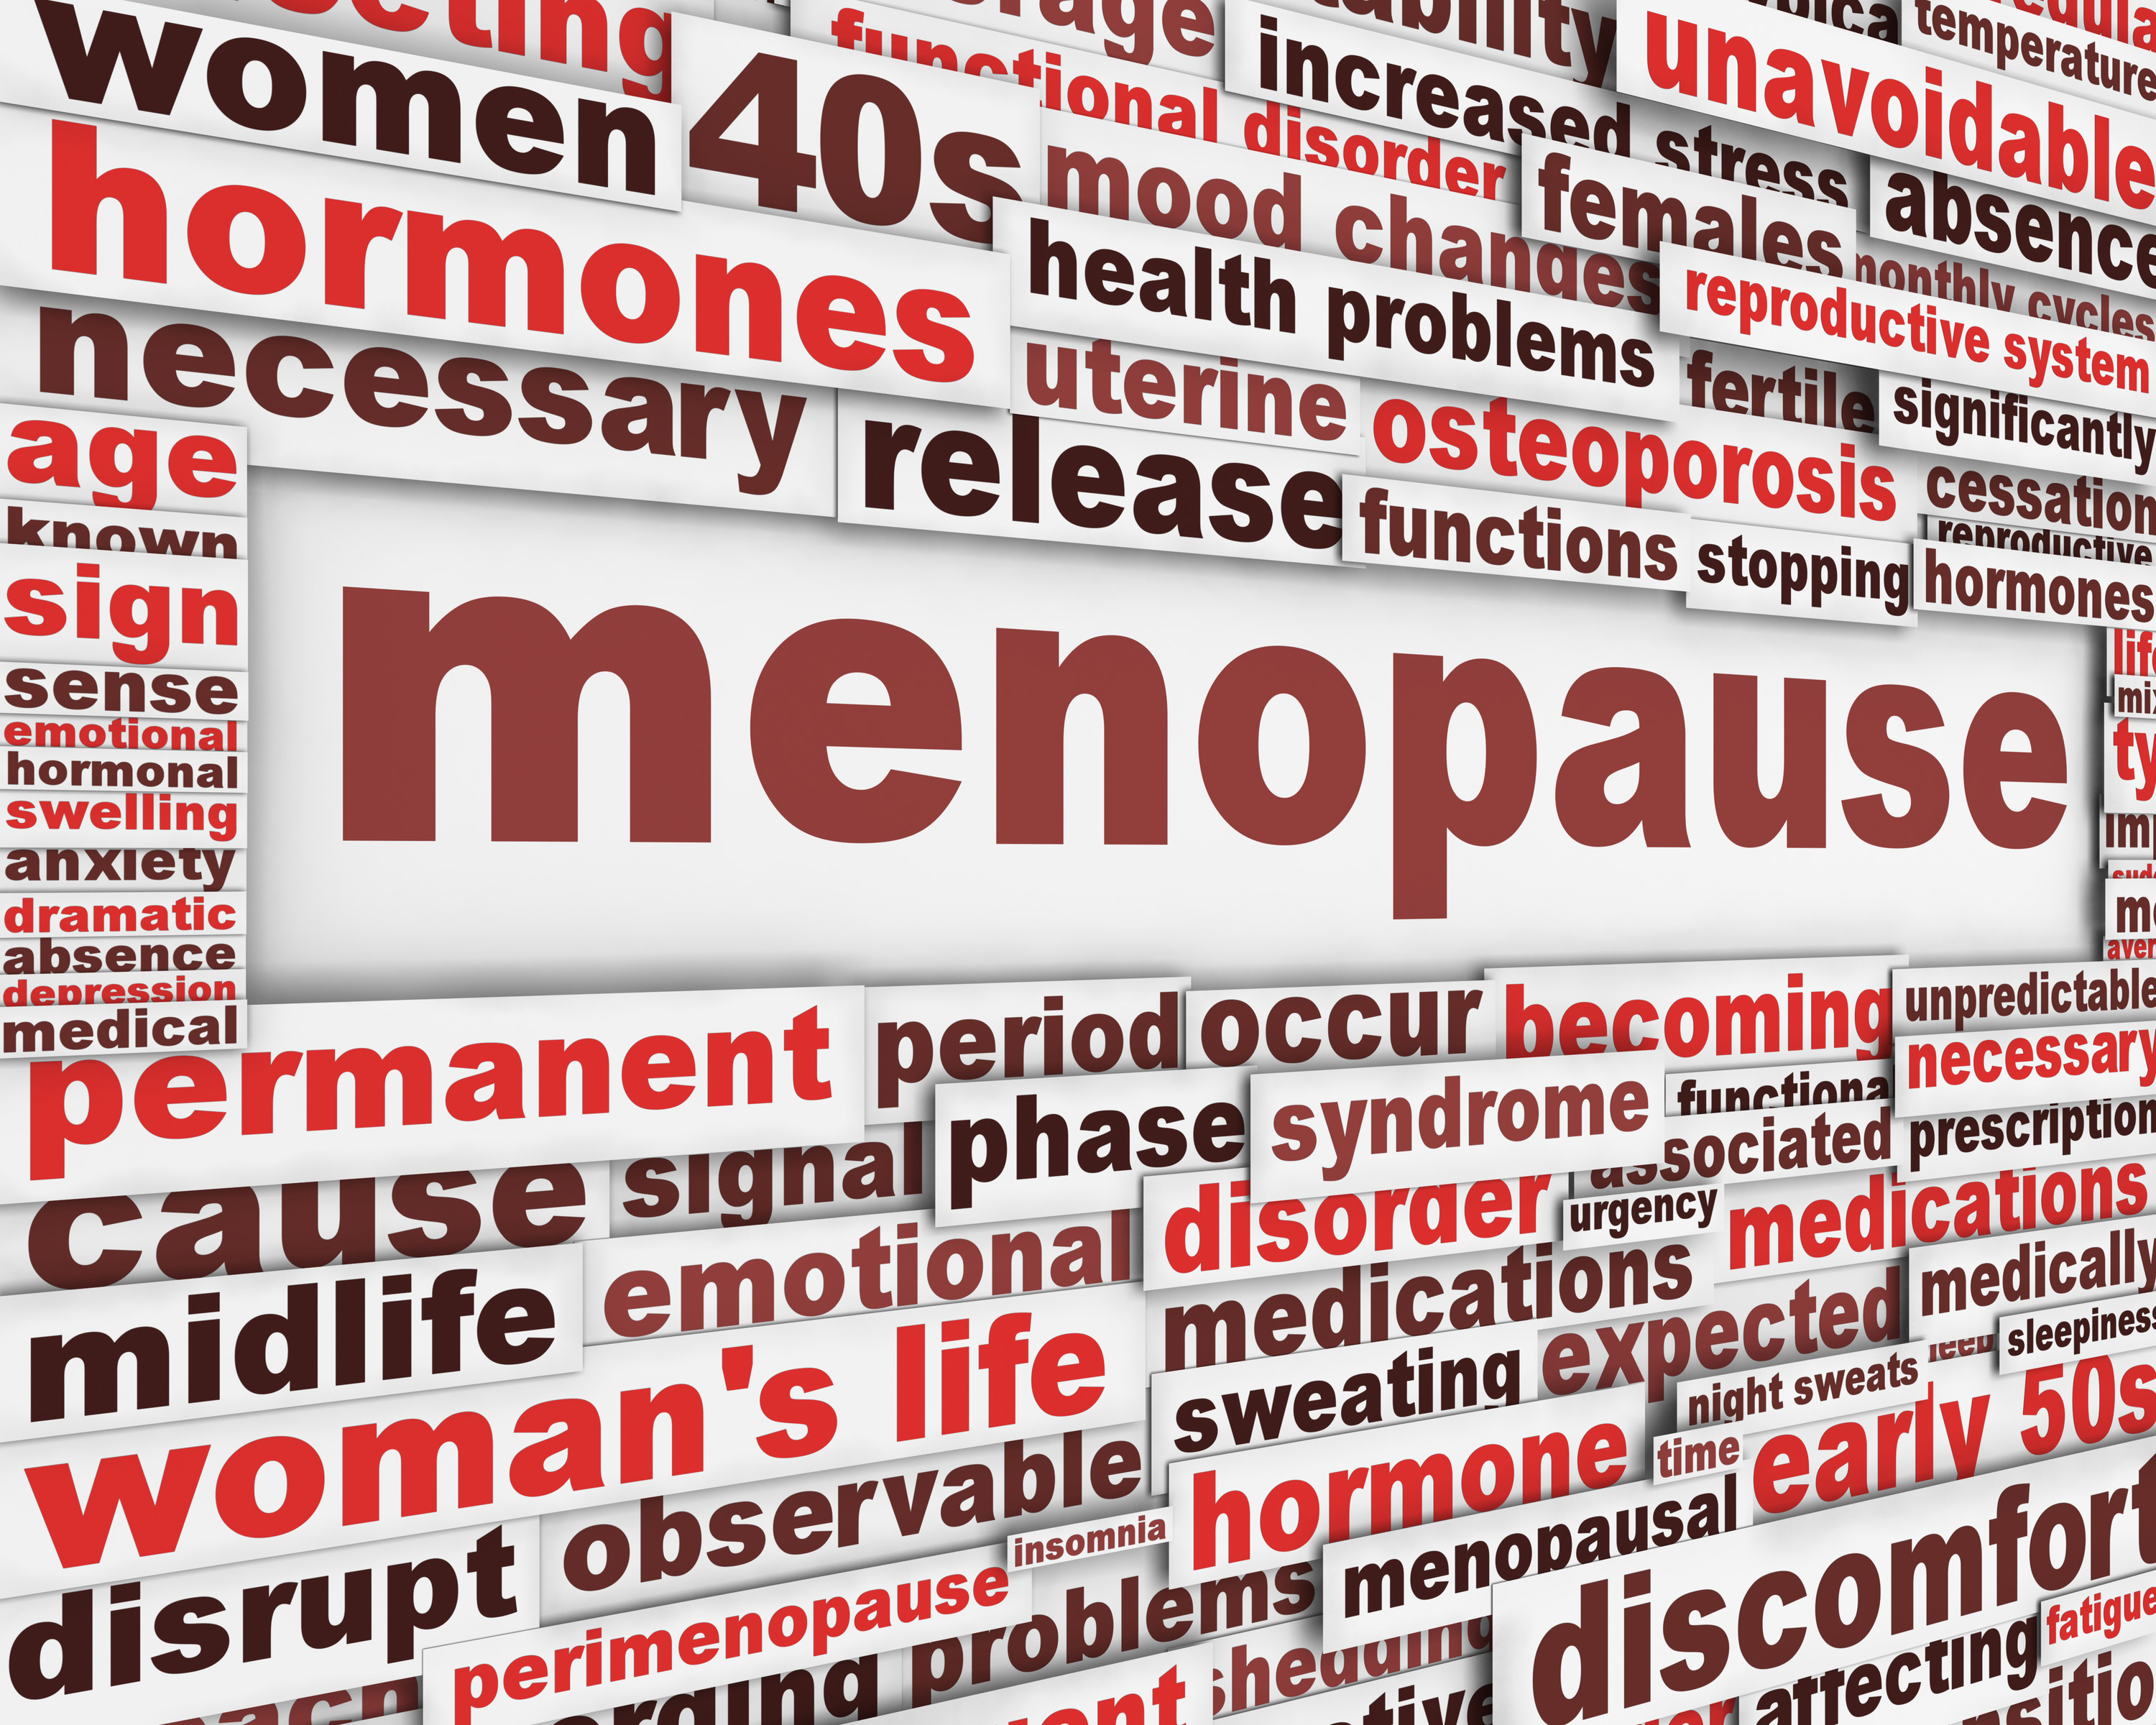 Treating Premature Menopause